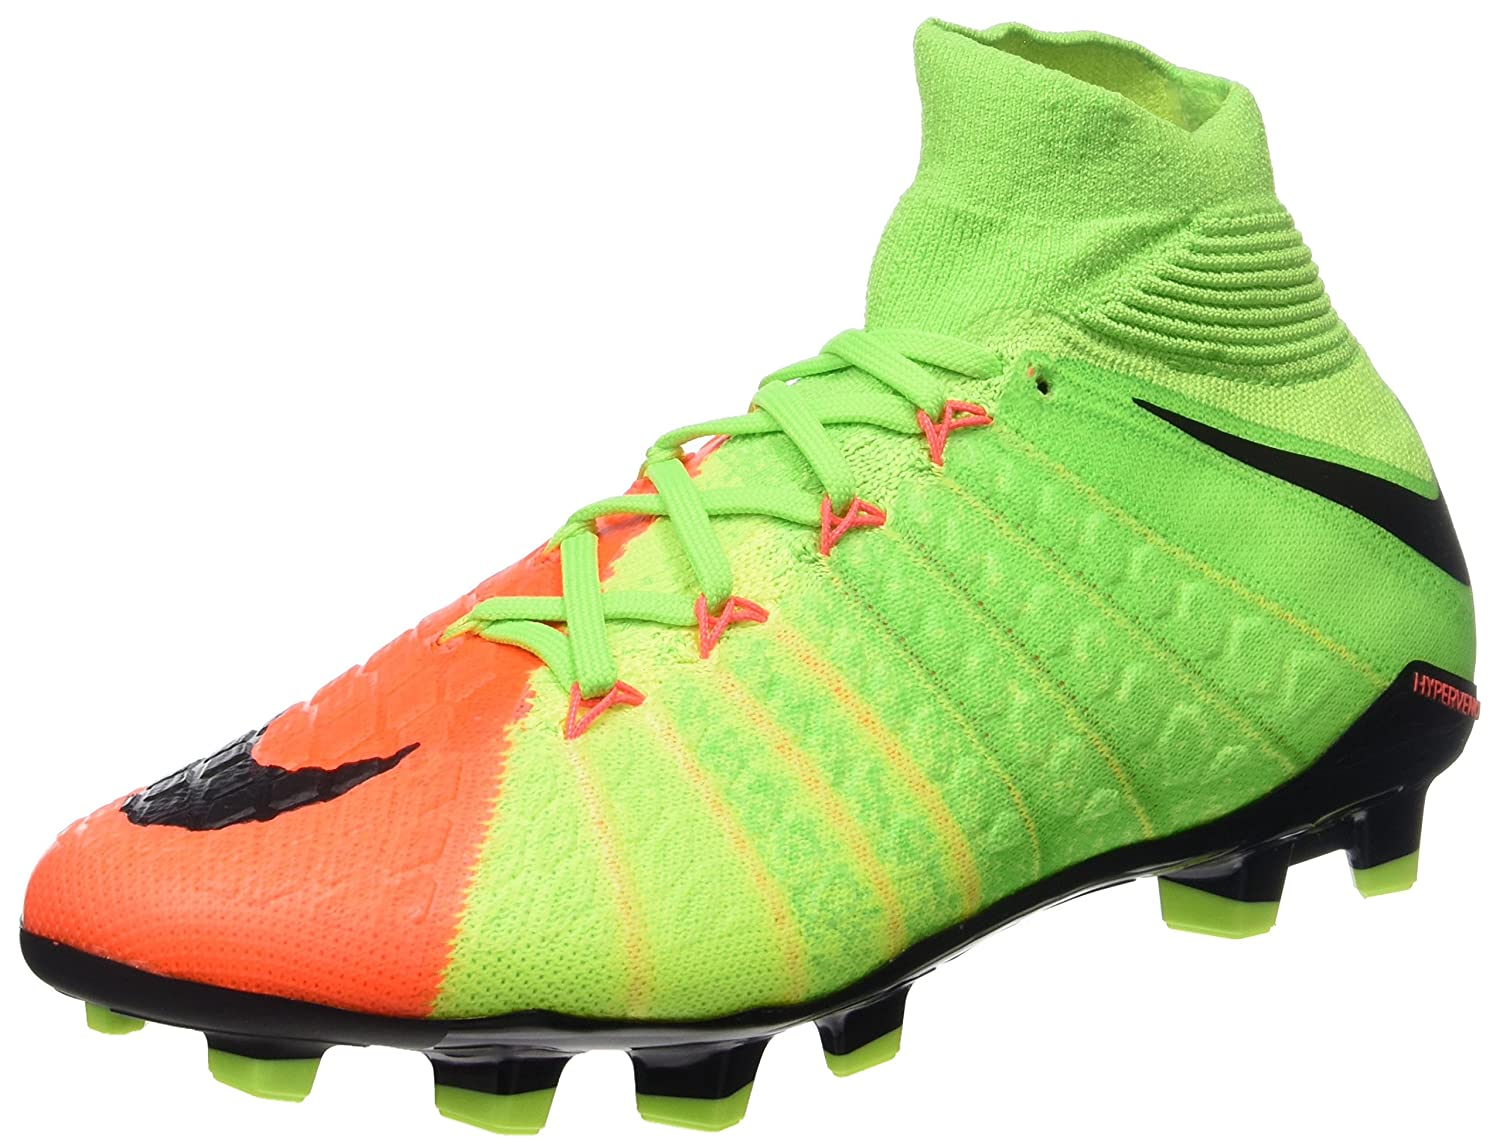 acheter pas cher 196cd ff095 Nike Youth Hypervenom Phantom III Dynamic Fit FG Cleats [Electric Green]  (5.5Y)